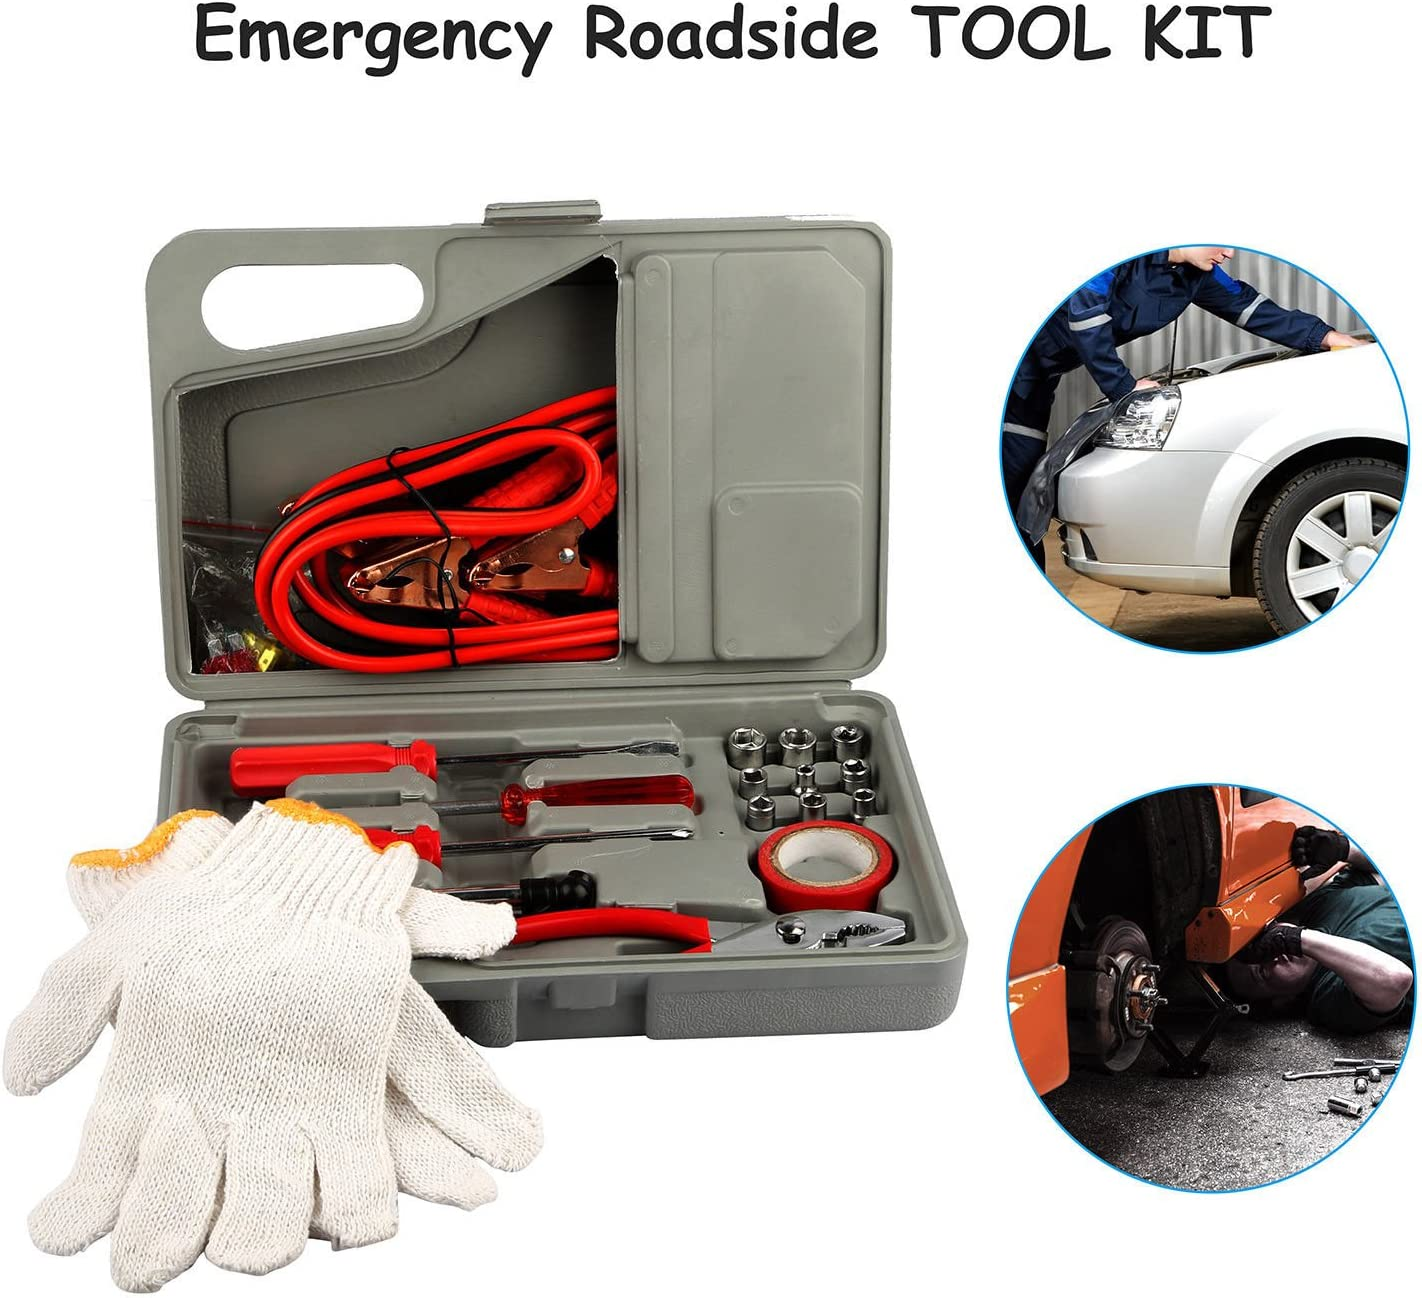 Jumper Cables Sockets Drivers with Bonus Gloves AVGDeals 31 Pieces Emergency Roadside Car Tool Kit Jumper Drivers Cables Gloves Socket 31 Piece w